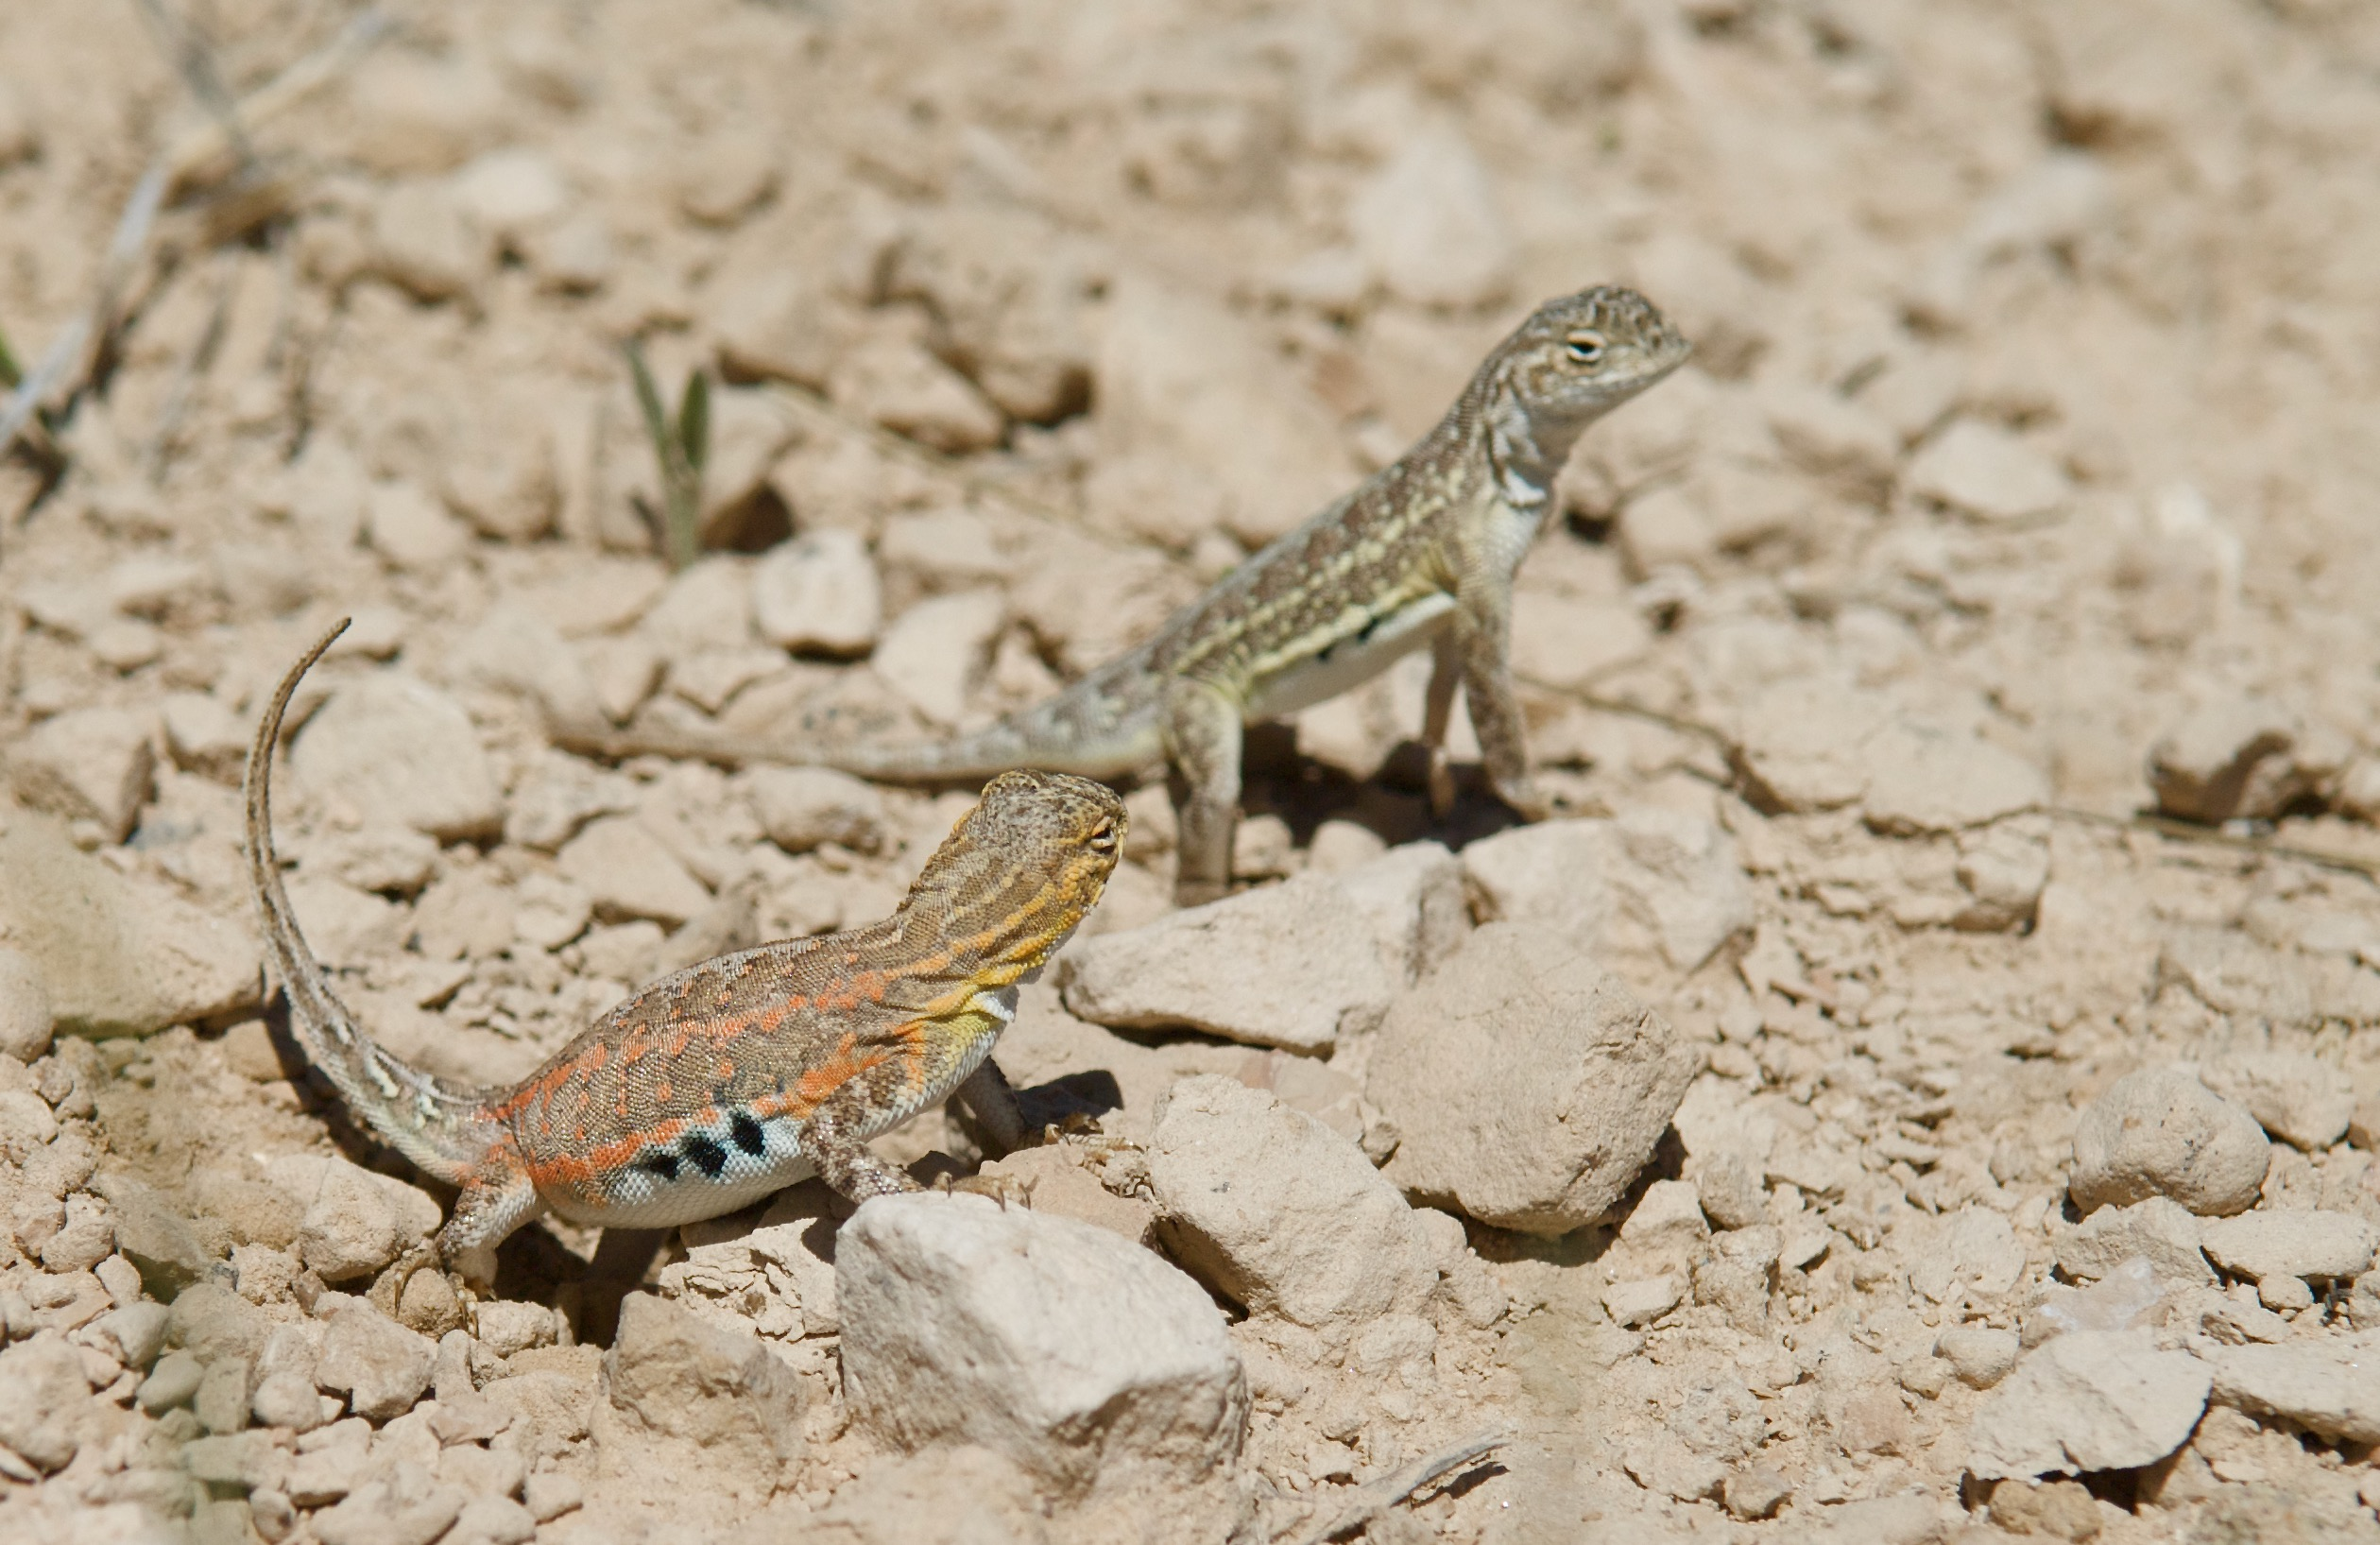 Lesser Earless Lizard Pair (female near)